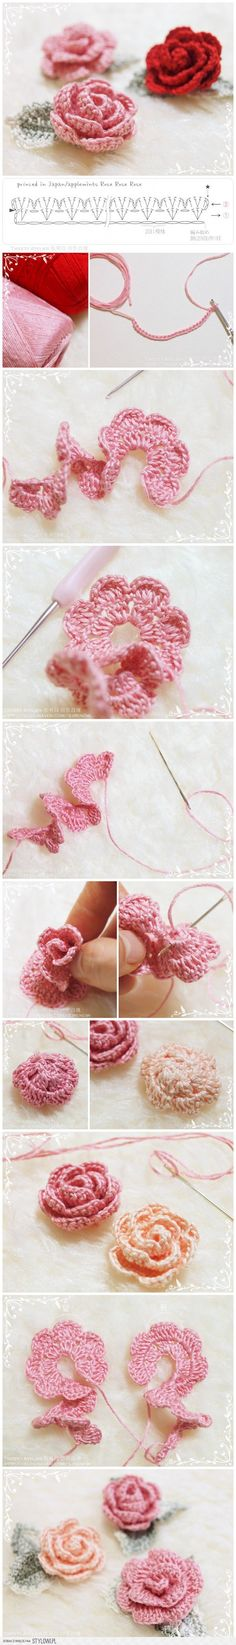 How to make hand-knitted rose na Stylowi.pl